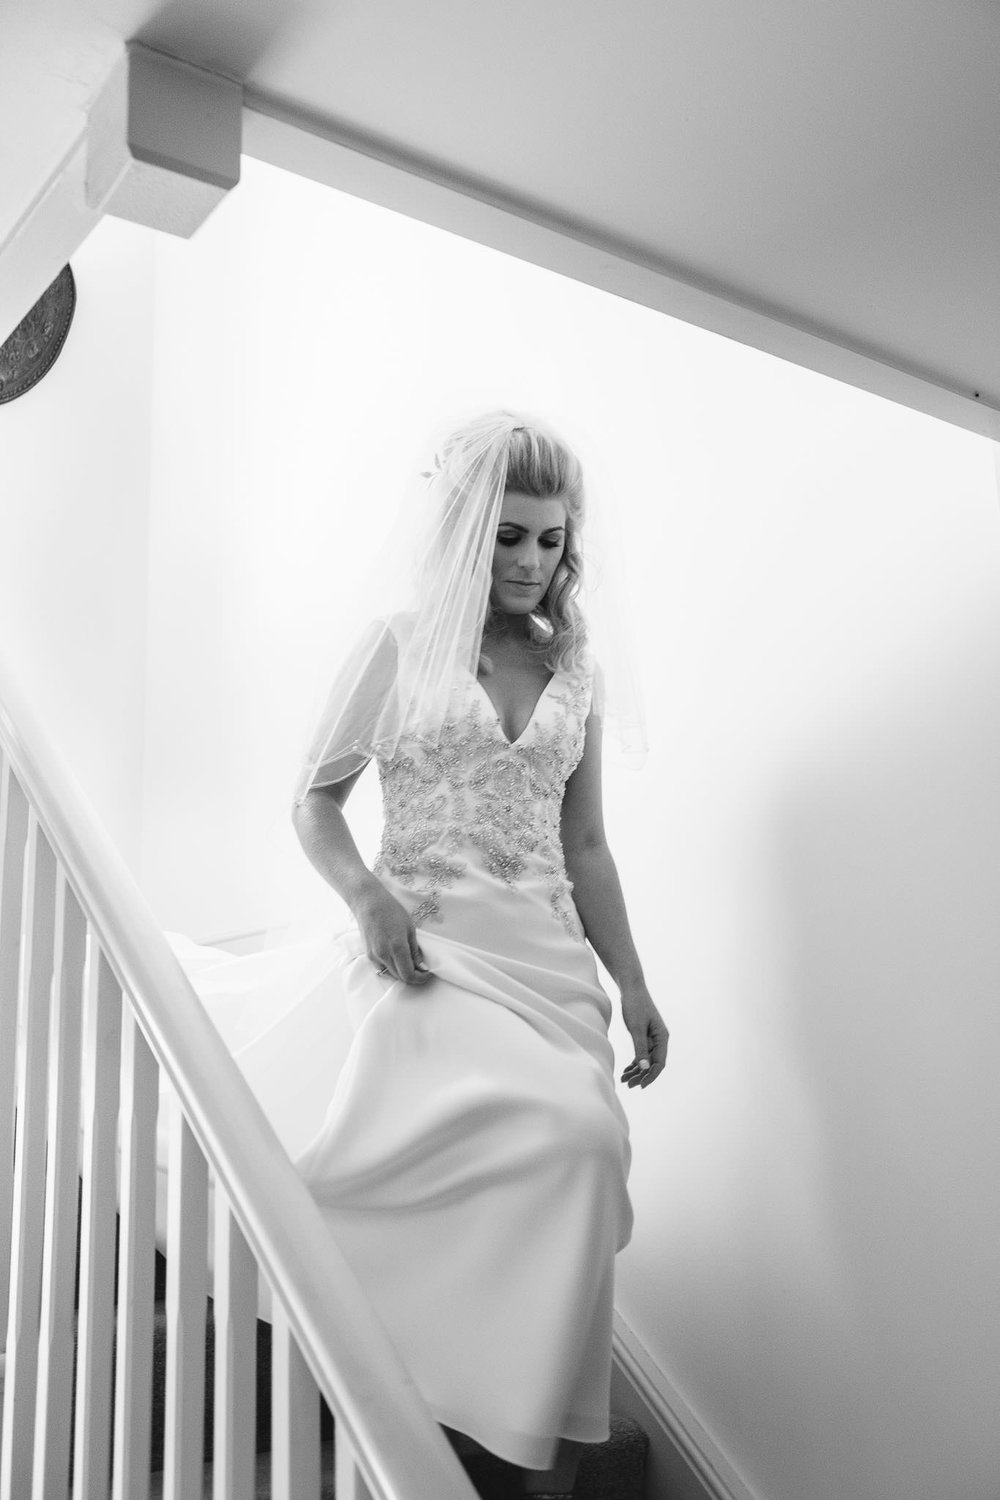 A black and white photo of the bride walking down the stairs